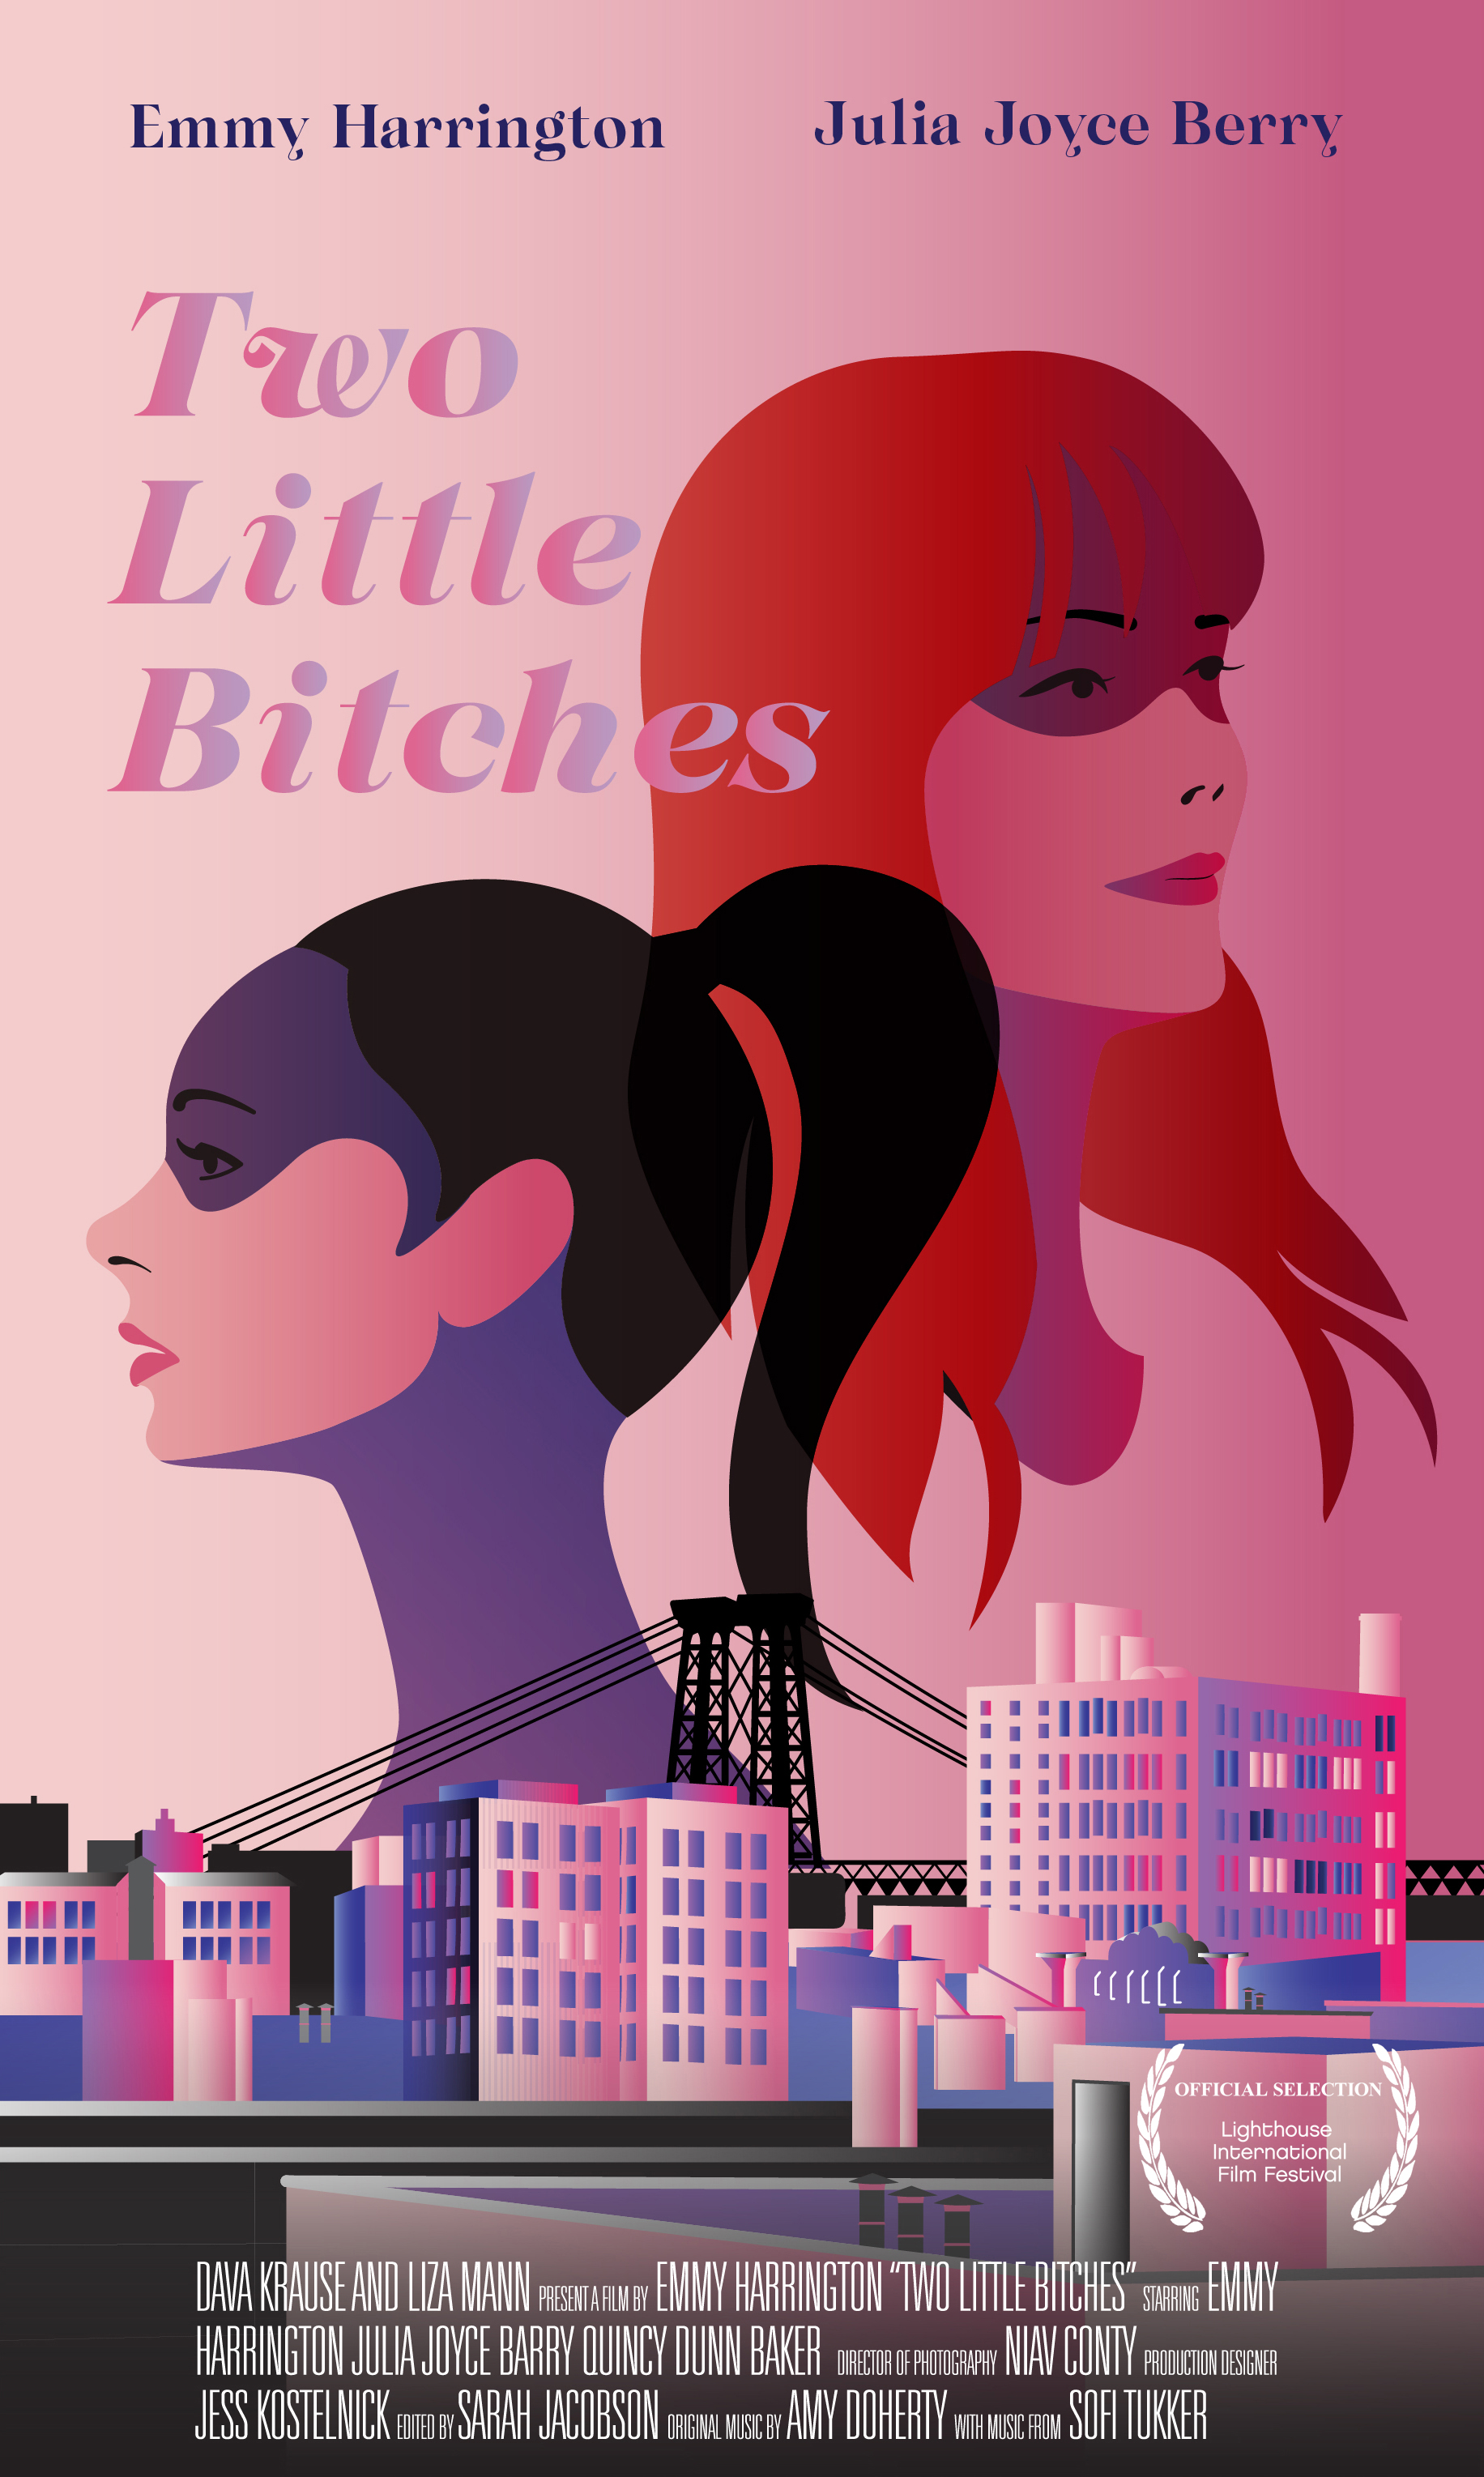 TWO LITTLE BI*#HES - I wrote the screenplay for this feature length film. I also directed the film which follows two sisters over the course of 72 hours. We hope to address the larger issue of disparity of women to men in the film industry both behind and in front of the camera. Winner of Best Film and Best Director at the International Women's Film Festival in Los Angeles. Two little Bi*#hes r is a feature film shot by an all female crew in Brooklyn which has completed principal photography. It is currently in post production and is expected to reach audiences by 2017.